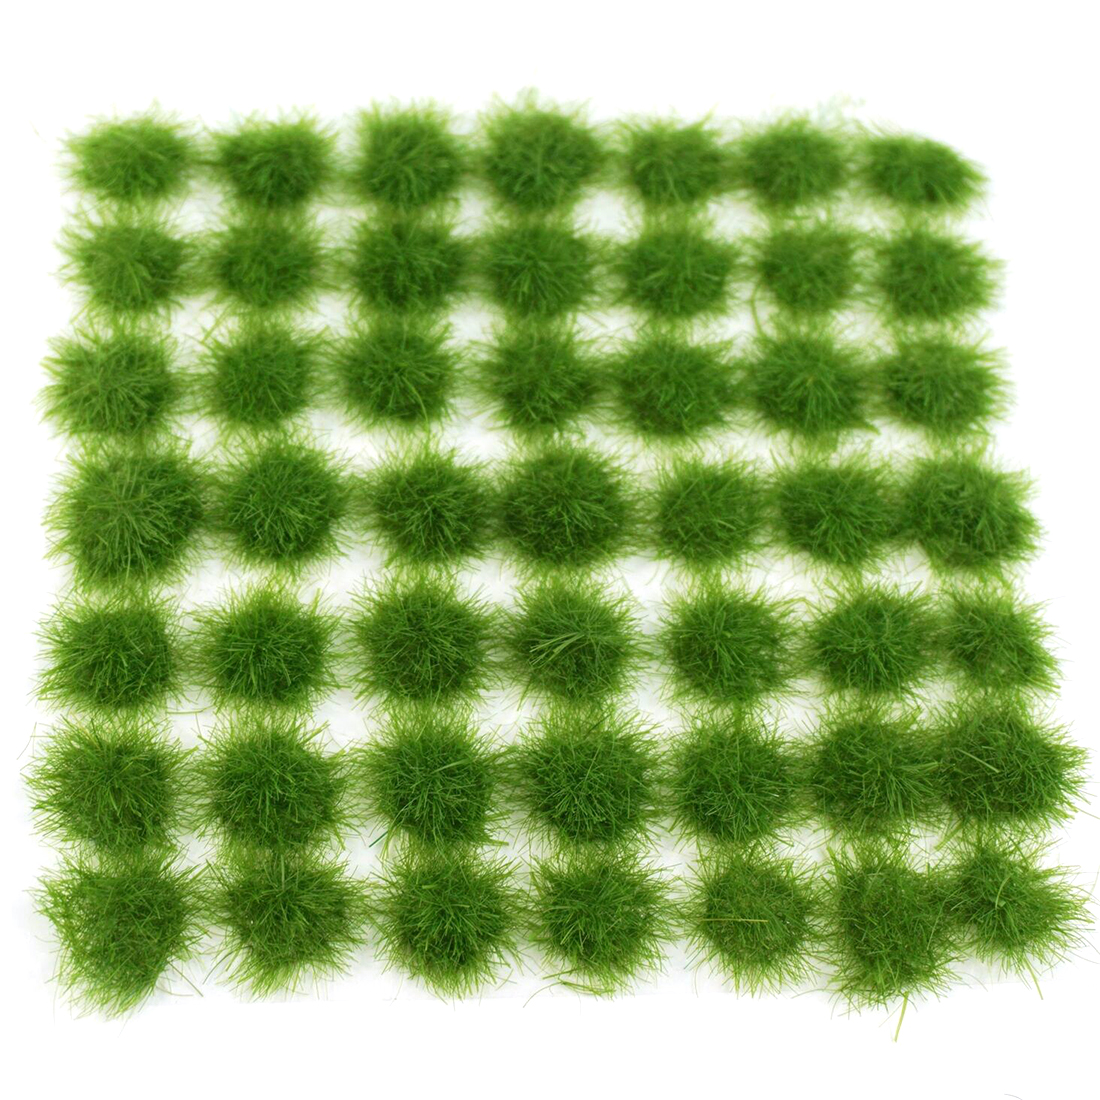 NFSTRIKE 1set Grass Cluster Static Grass Tufts For 1:35 1:48 1:72 1:87 Sand Table Architecture Model - Medium Green